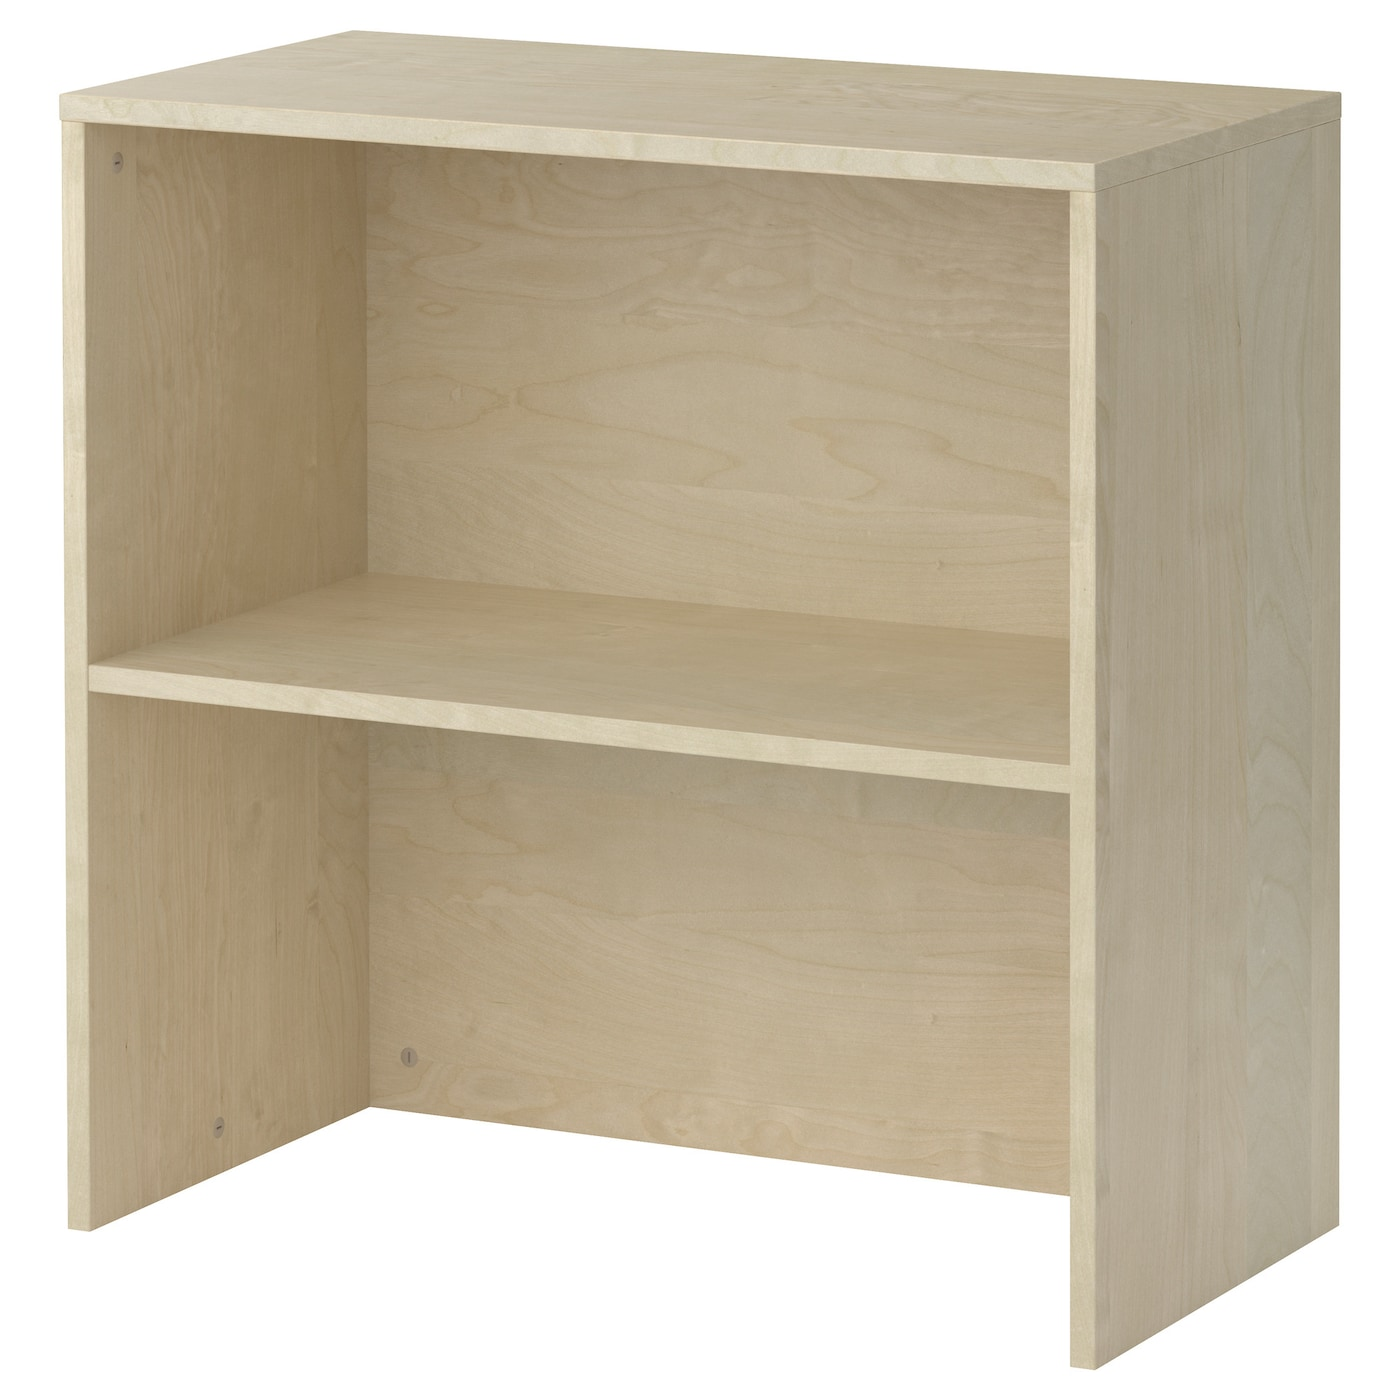 galant roll front cabinet birch veneer 80x80 cm ikea. Black Bedroom Furniture Sets. Home Design Ideas